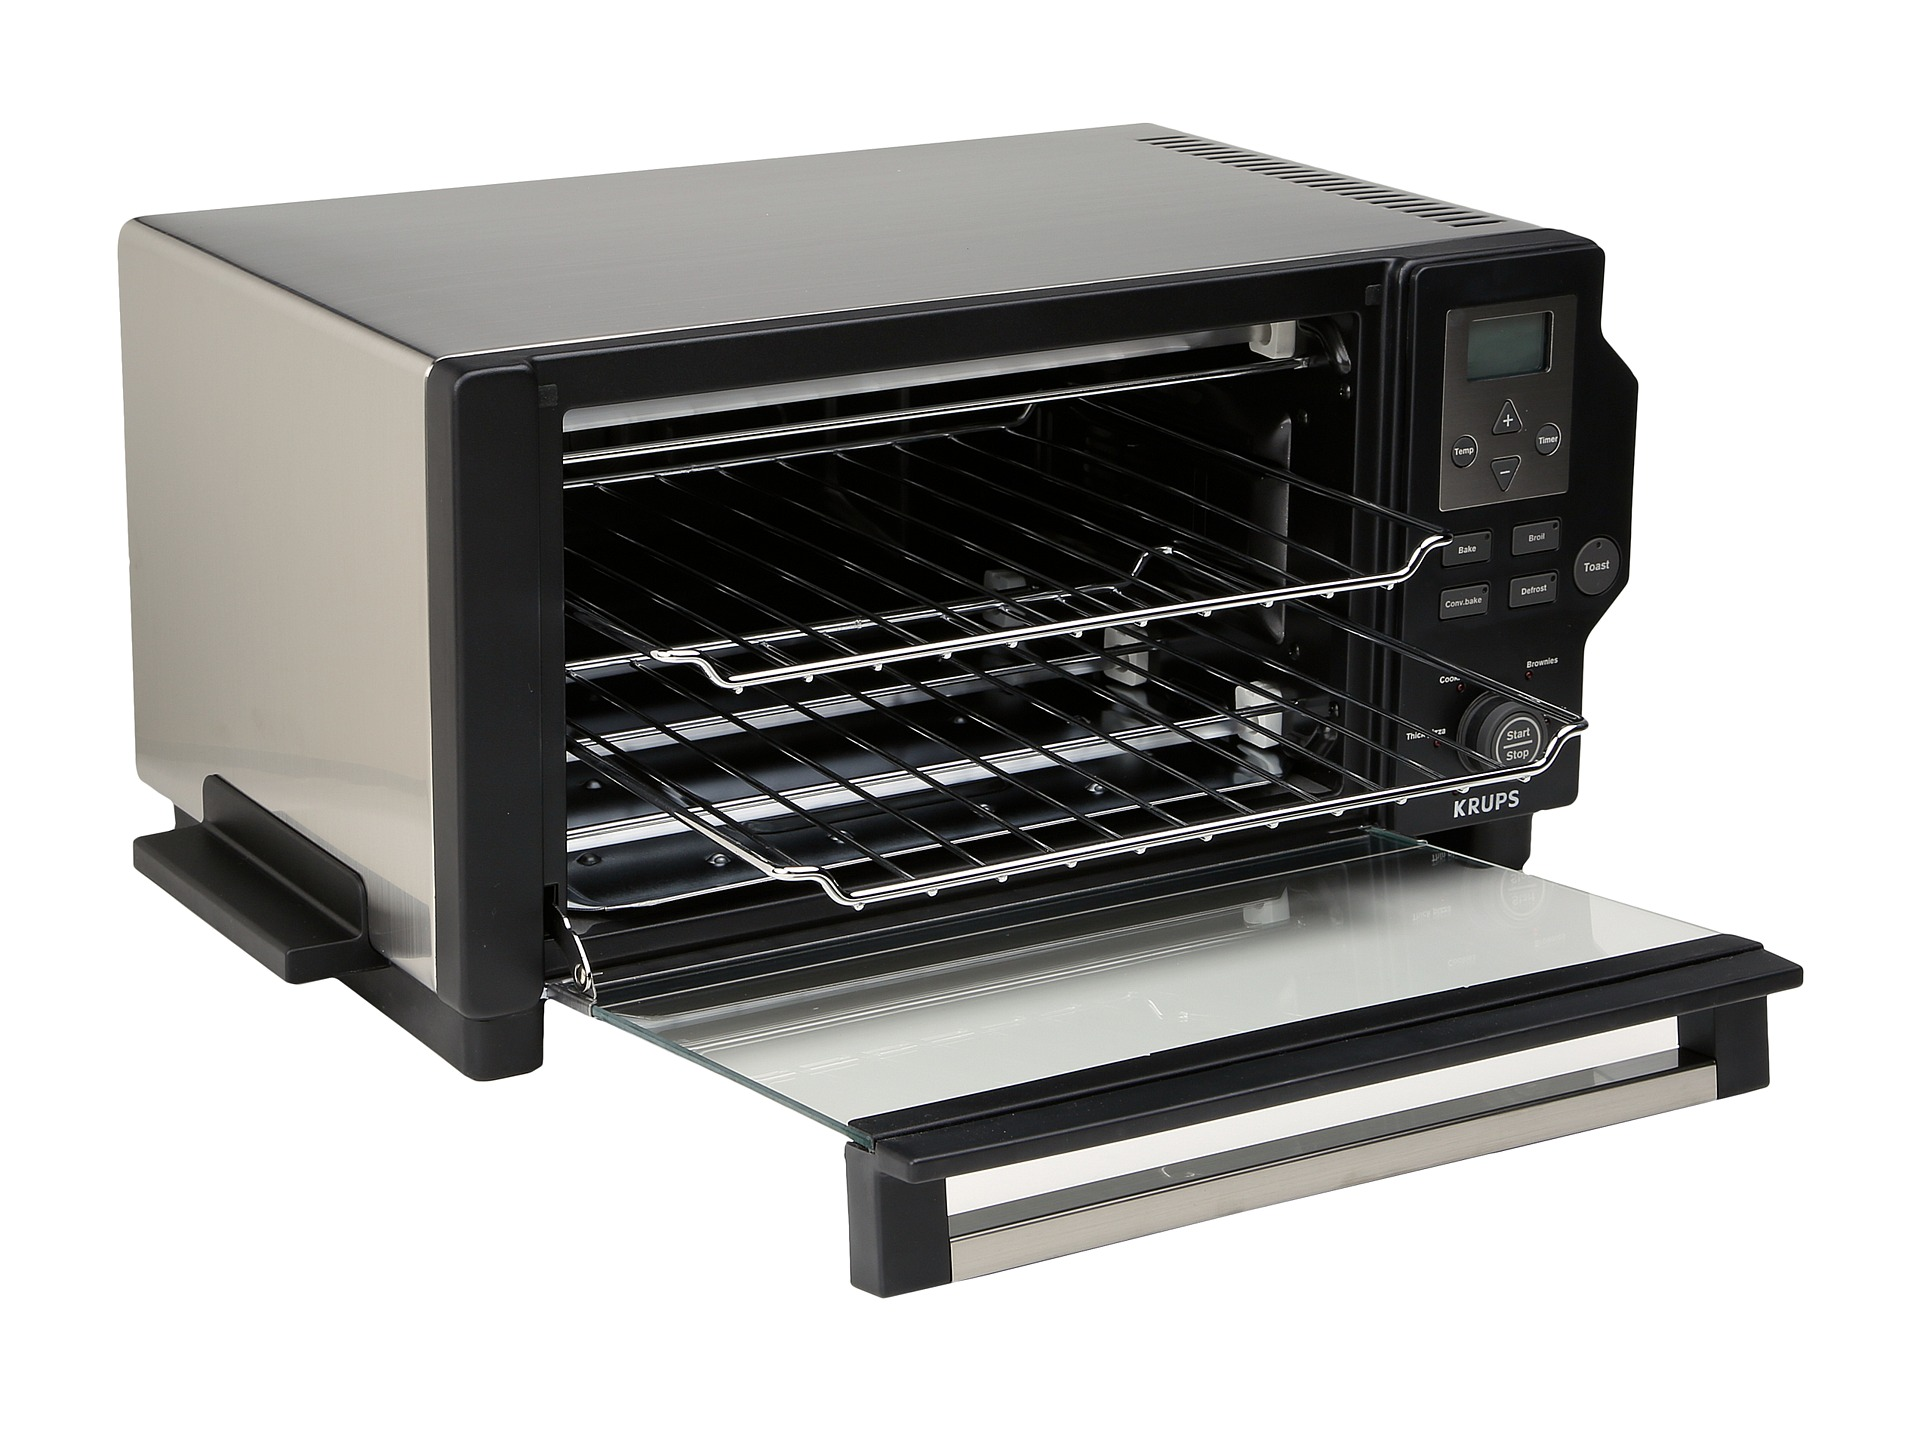 Krups Toaster Oven Black Stainless Steel Shipped Free at Zappos